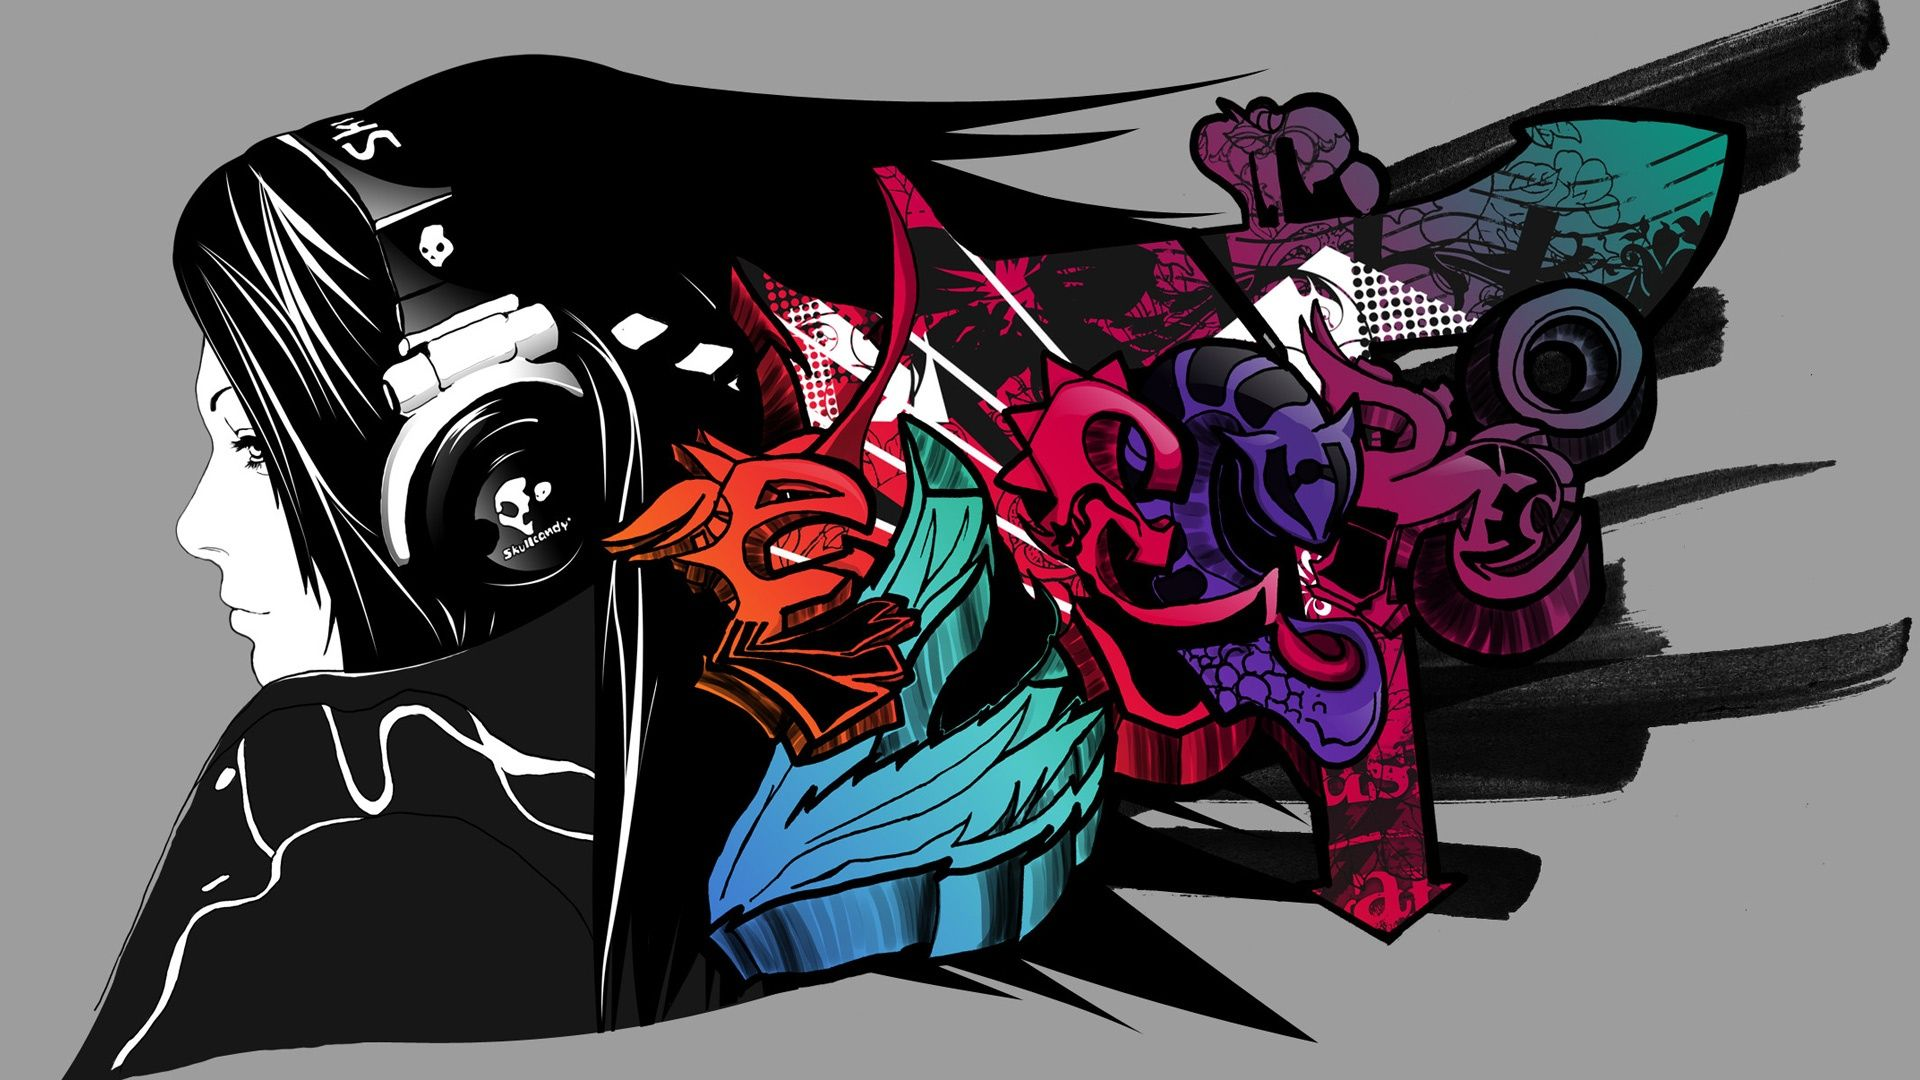 Graffiti Art Music Wallpaper High Definition For Desktop